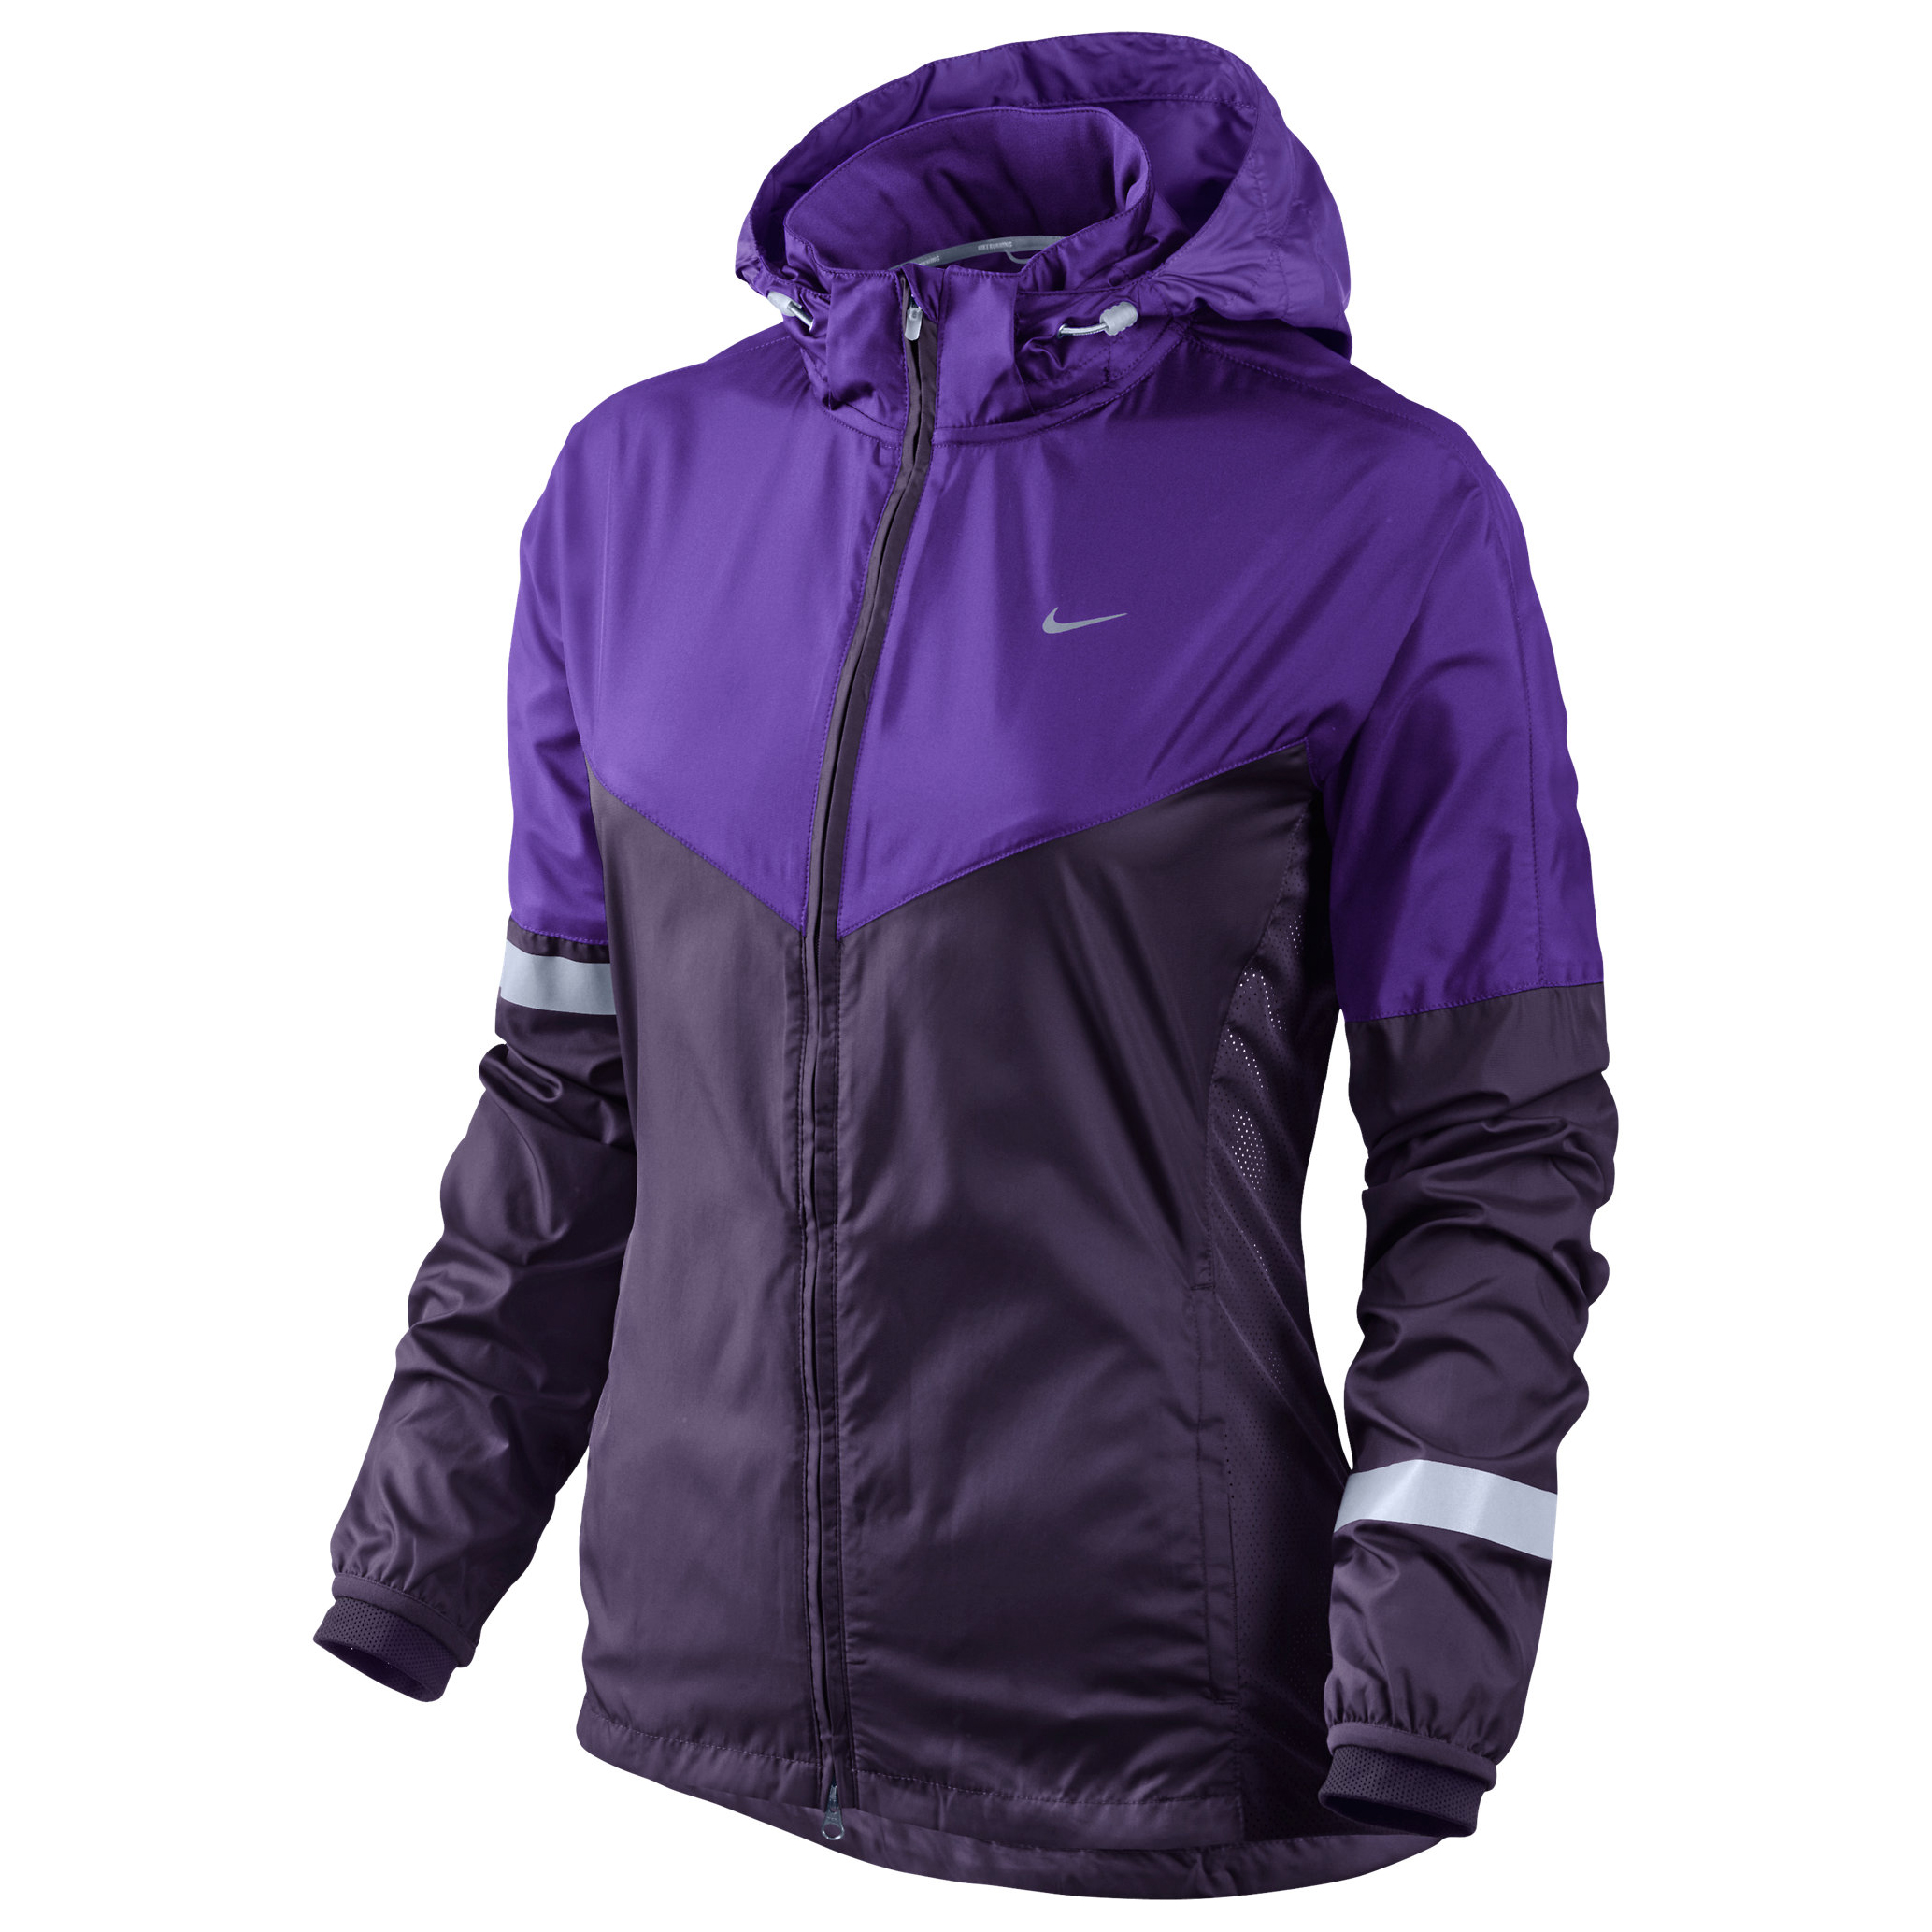 Nike Vapor Jacket - Womens Purple